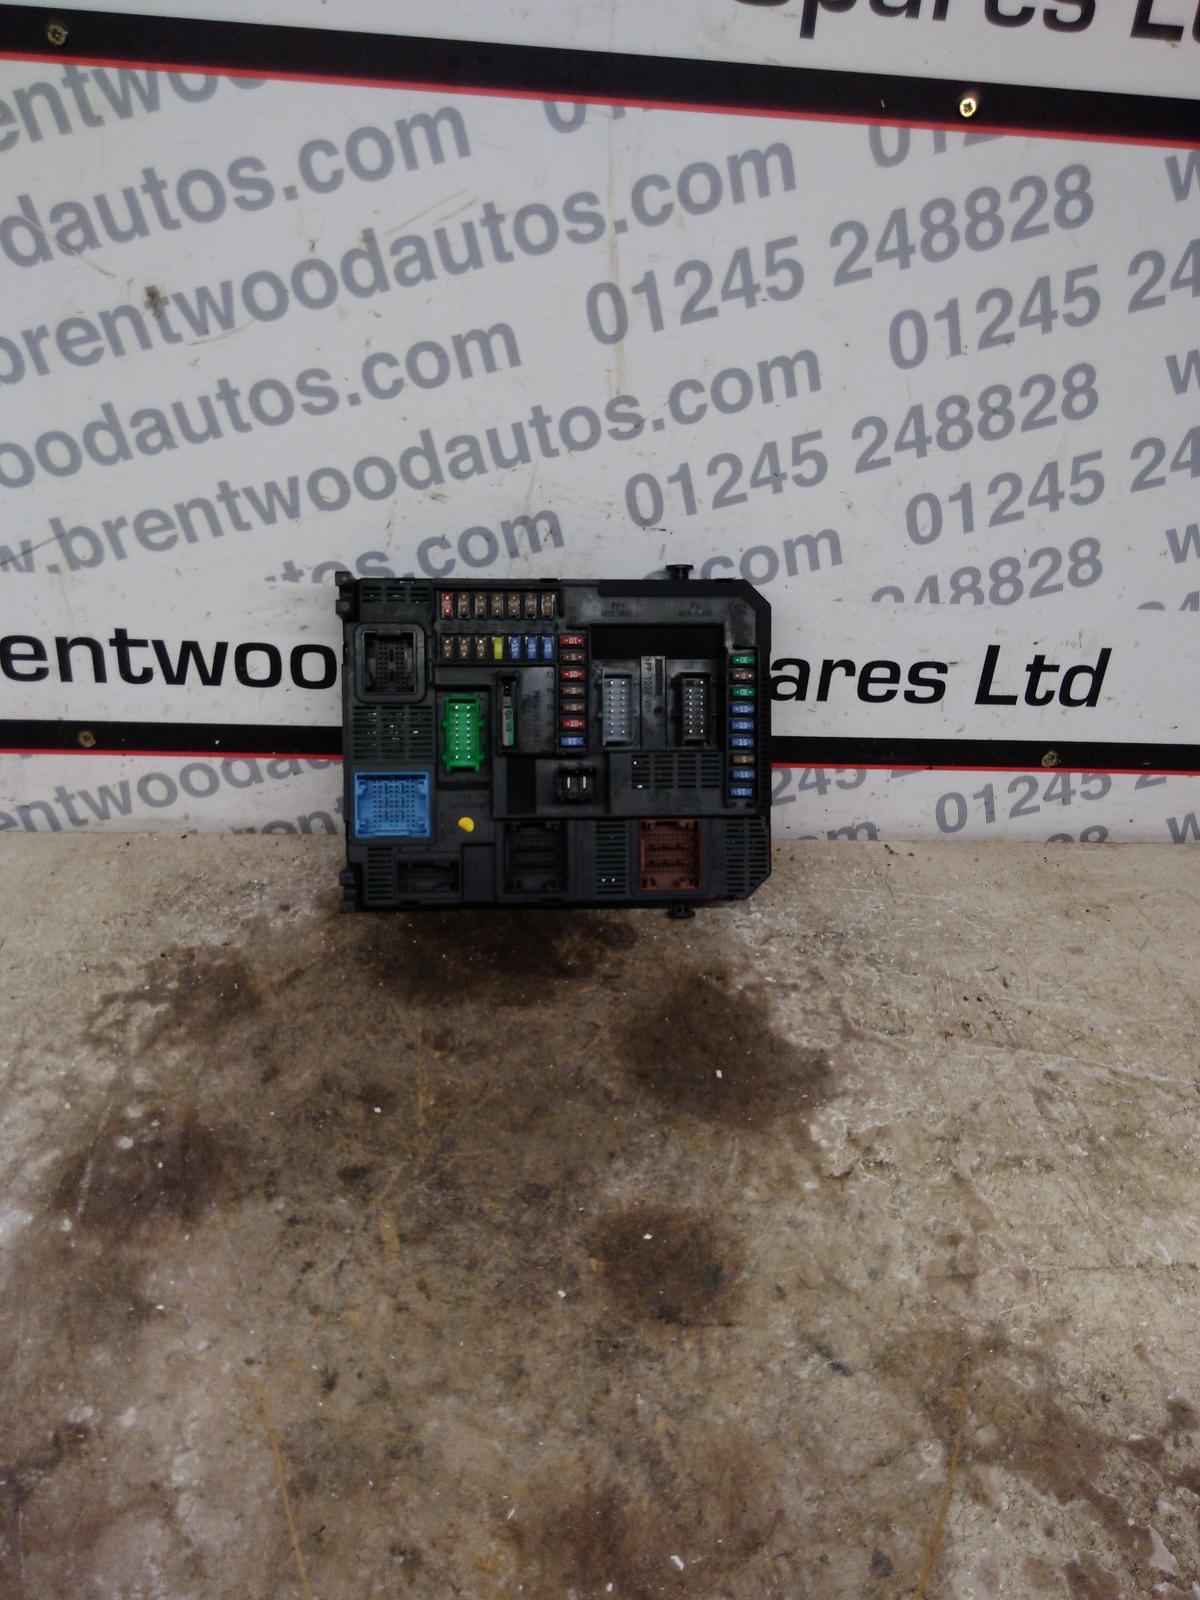 hight resolution of details about citroen c4 picasso mk2 2013 1 6 hdi fuse box bsi 9804067480